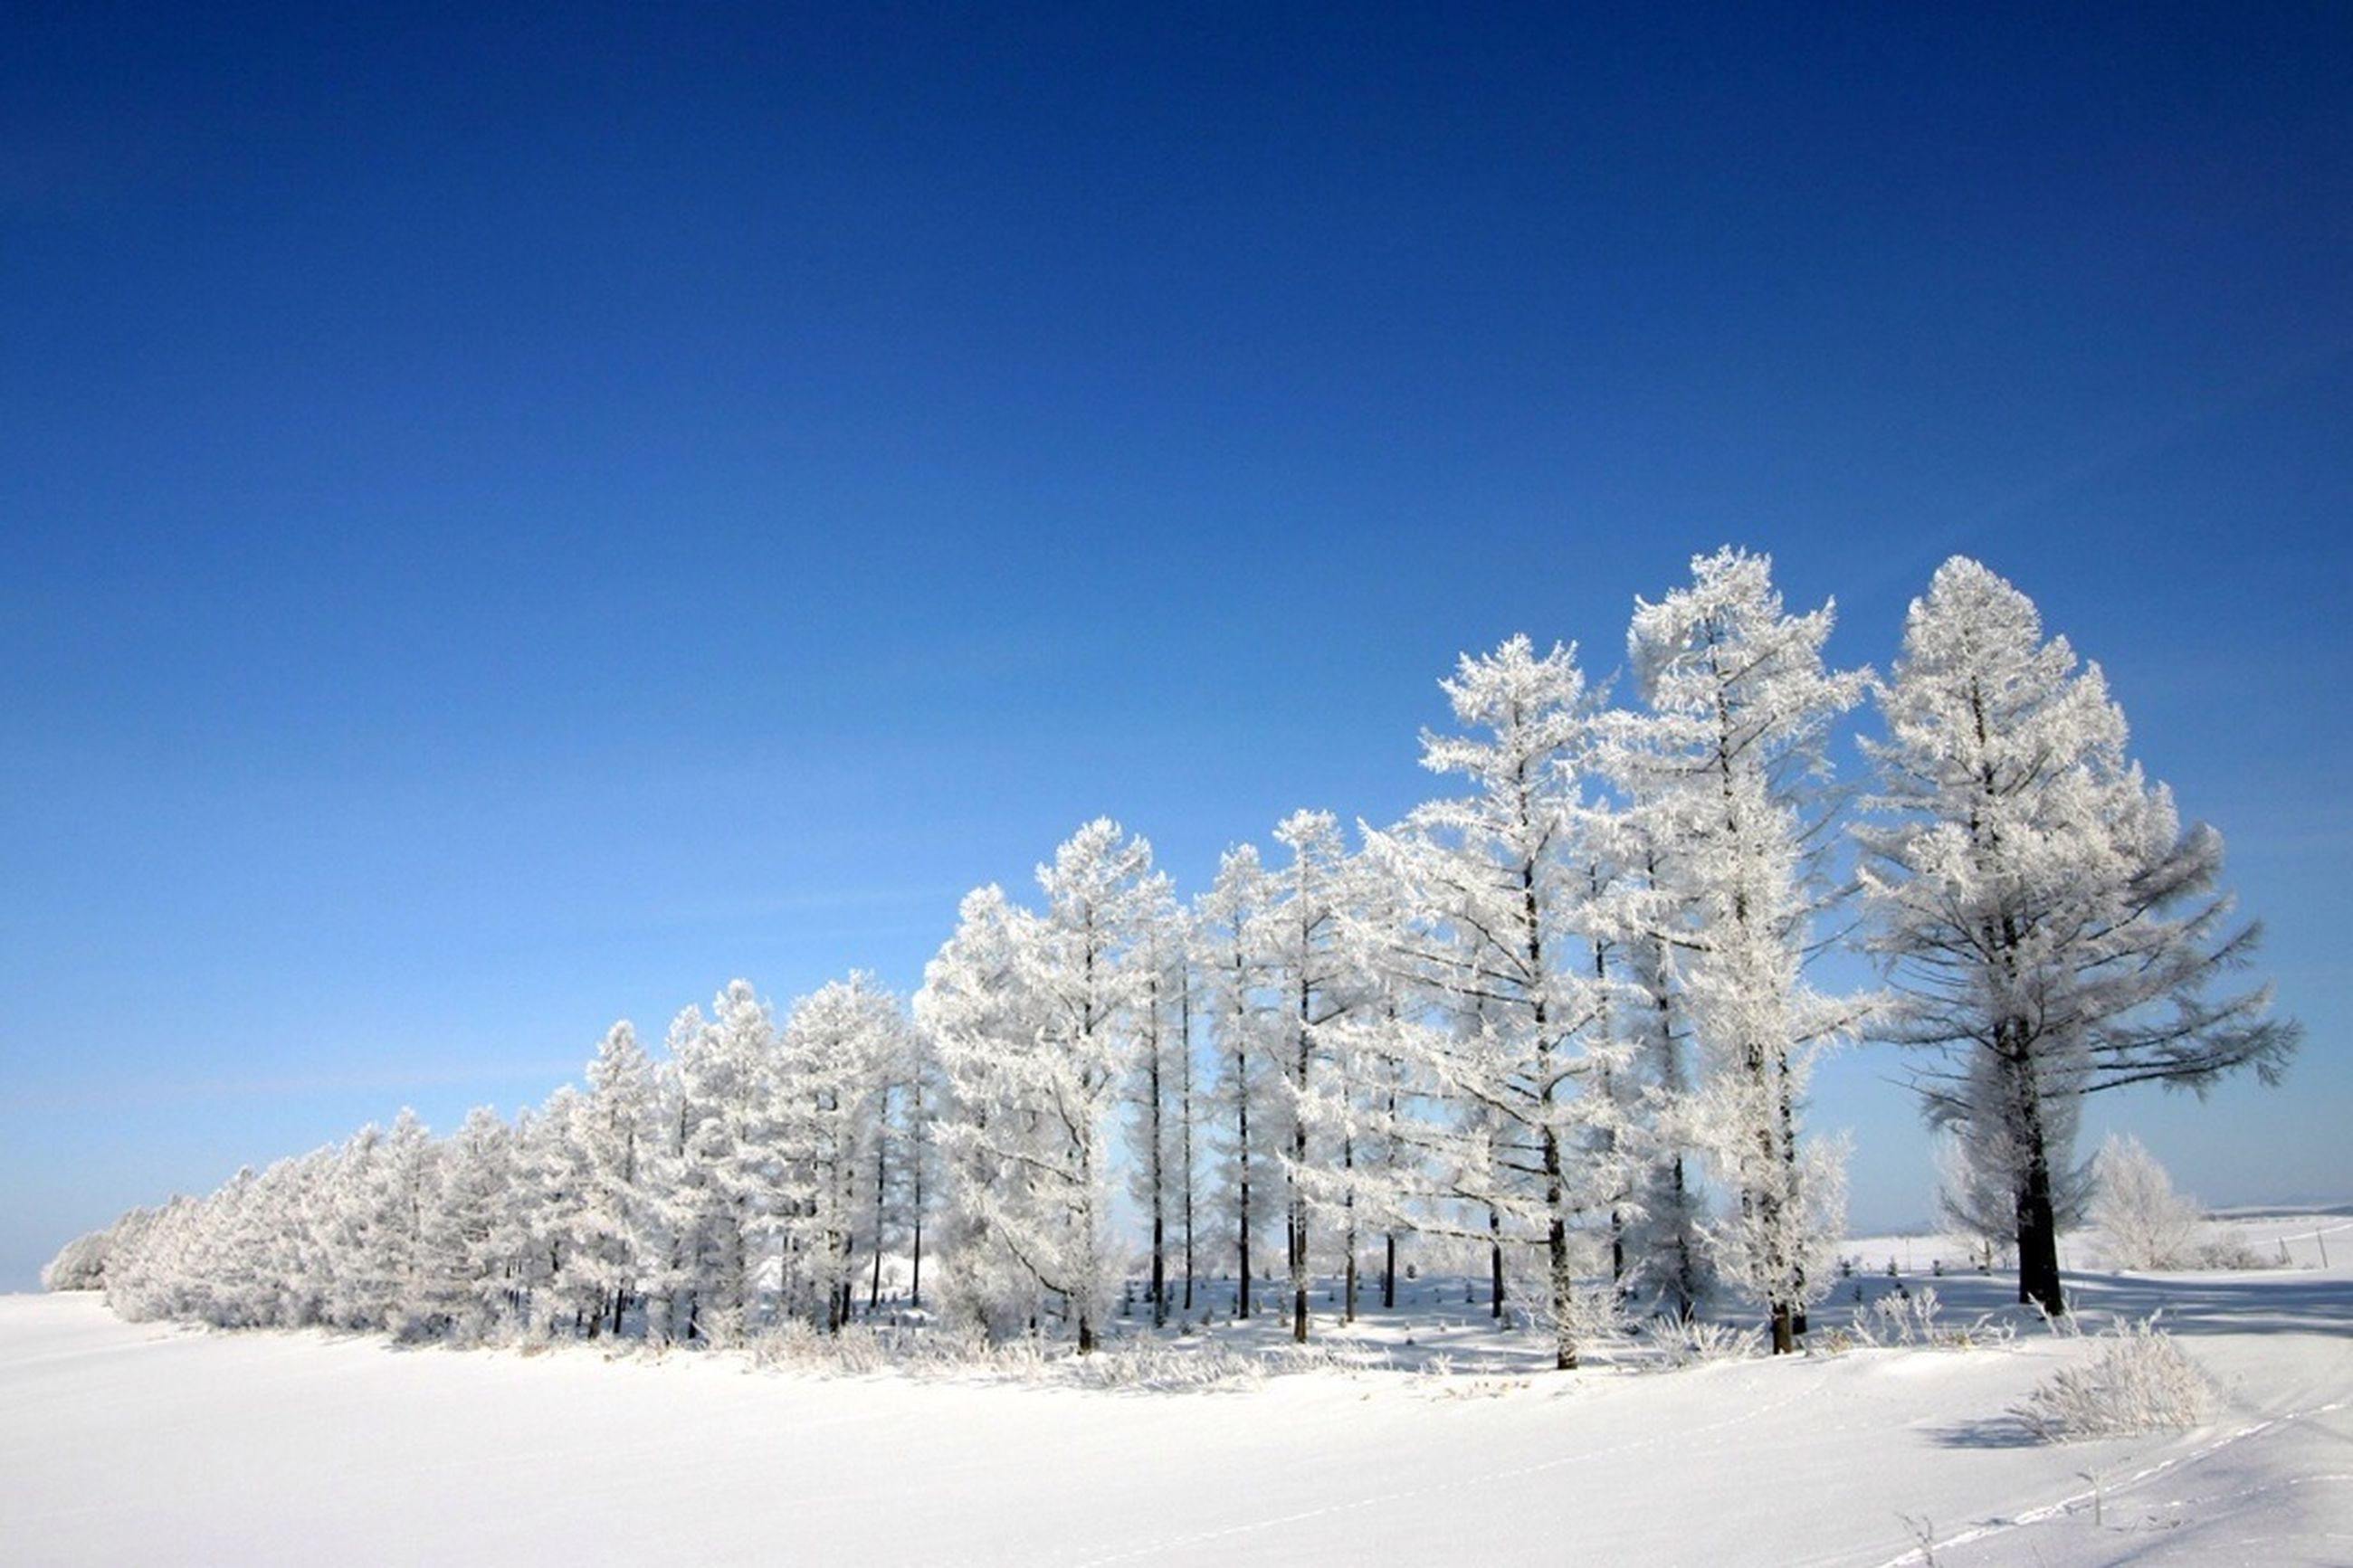 snow, winter, cold temperature, blue, clear sky, season, tree, white color, covering, tranquility, nature, tranquil scene, beauty in nature, copy space, weather, landscape, scenics, frozen, low angle view, sunlight